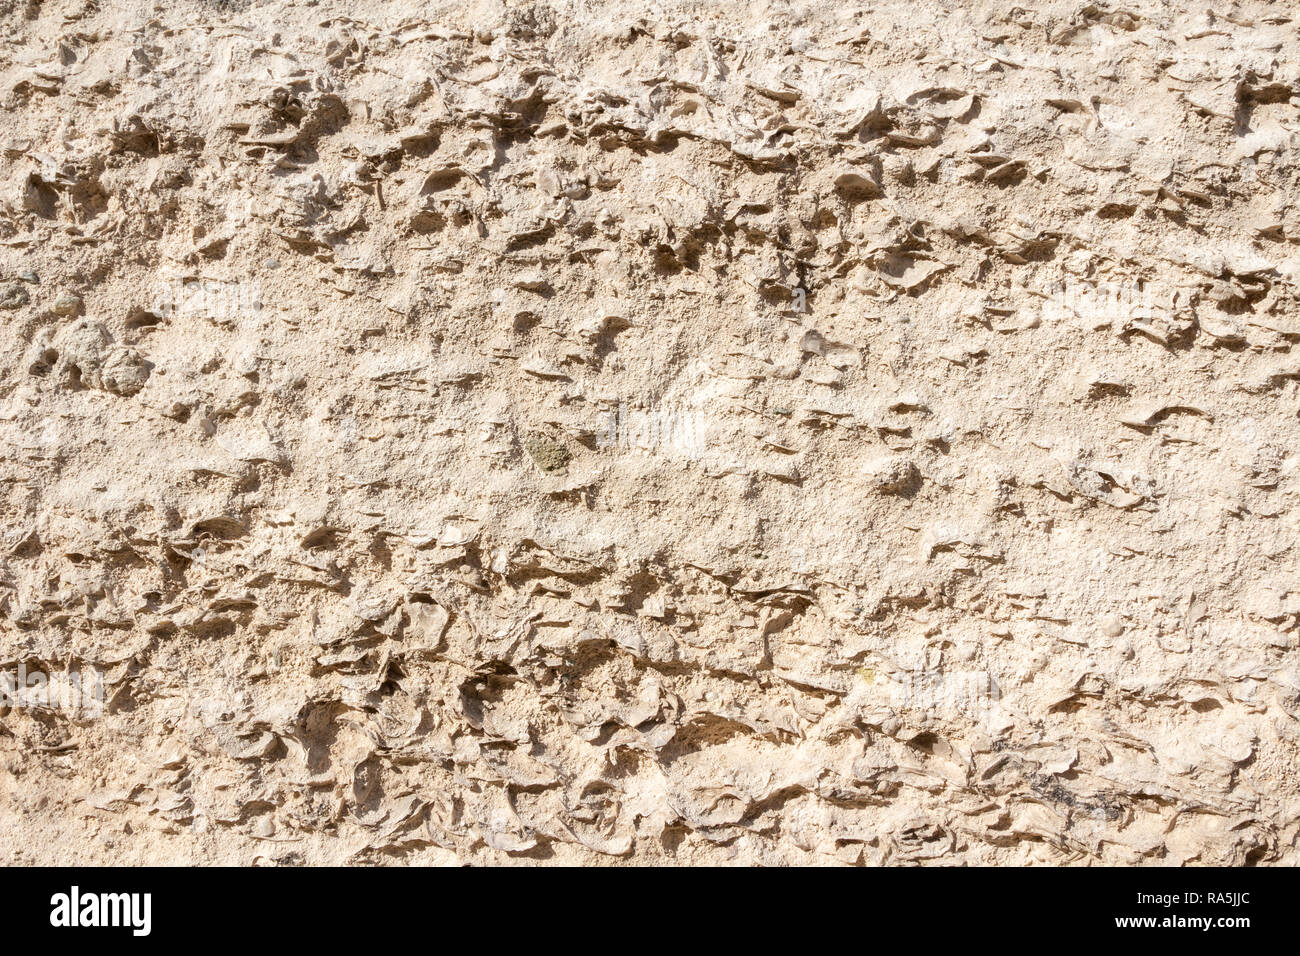 Natural limestone surface in the ground. Ancient shells. The stone formed 13–16 million years ago, Miocene era. - Stock Image